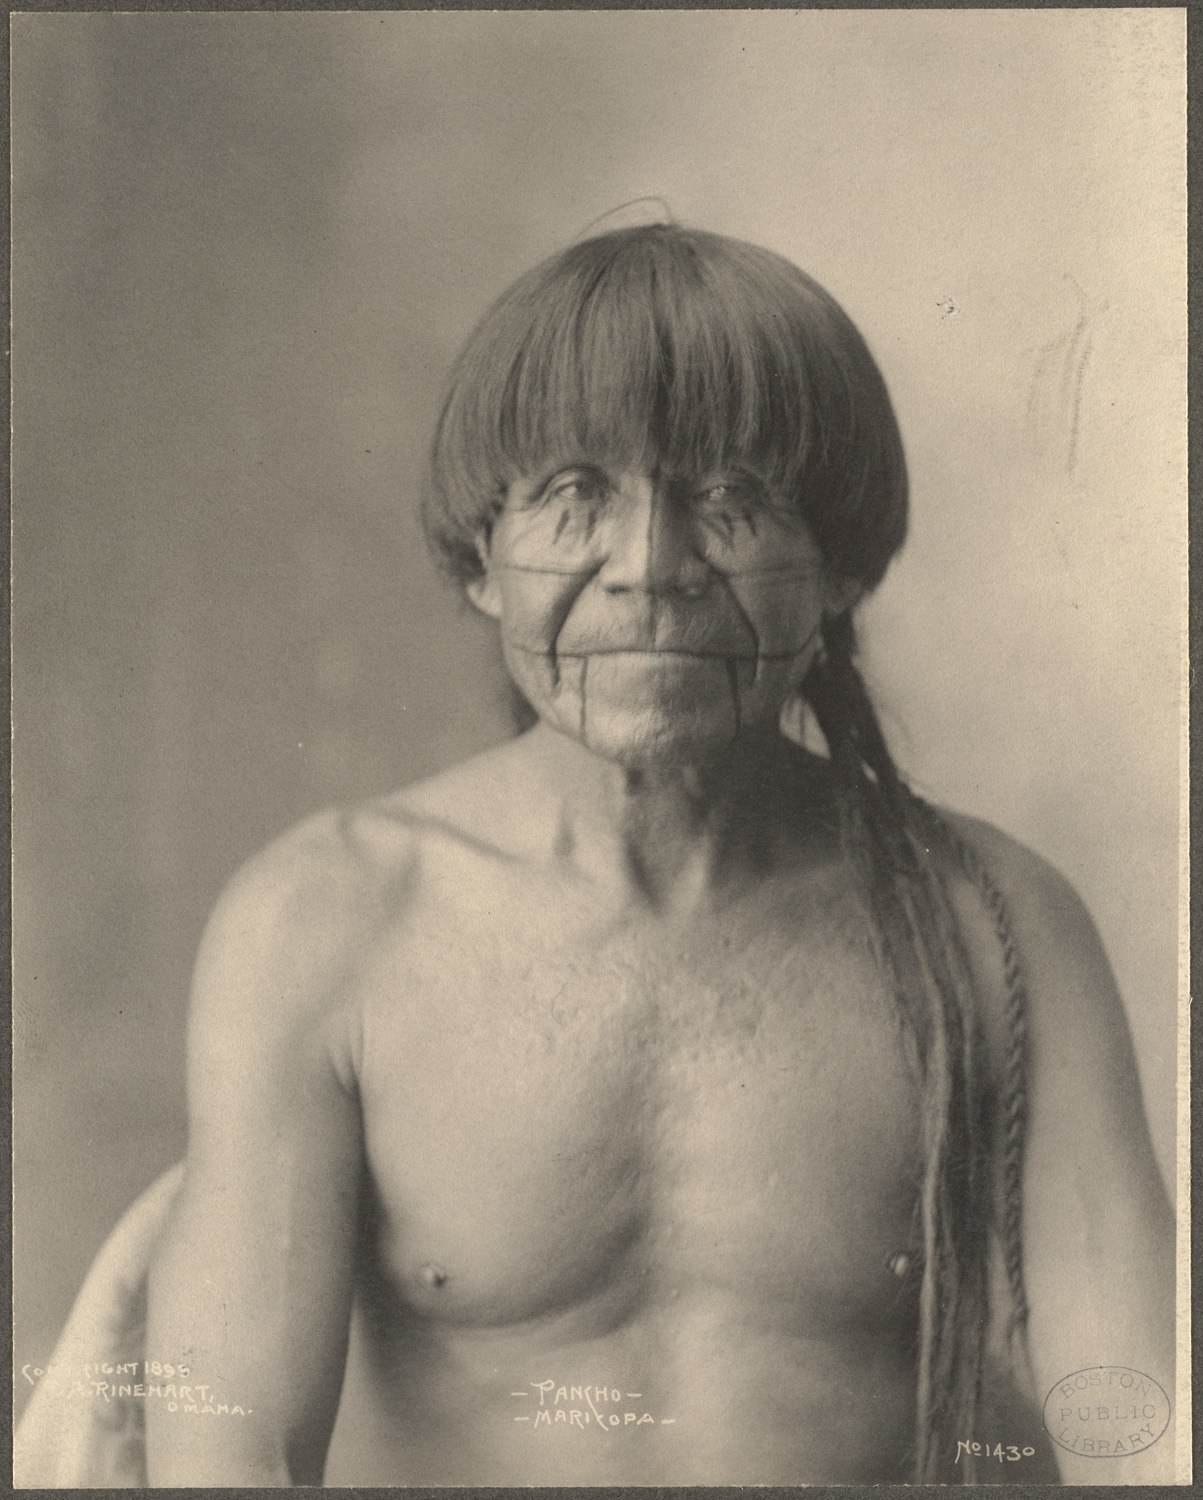 Pancho, Maricopa, 1899. (Photo by Frank A. Rinehart)